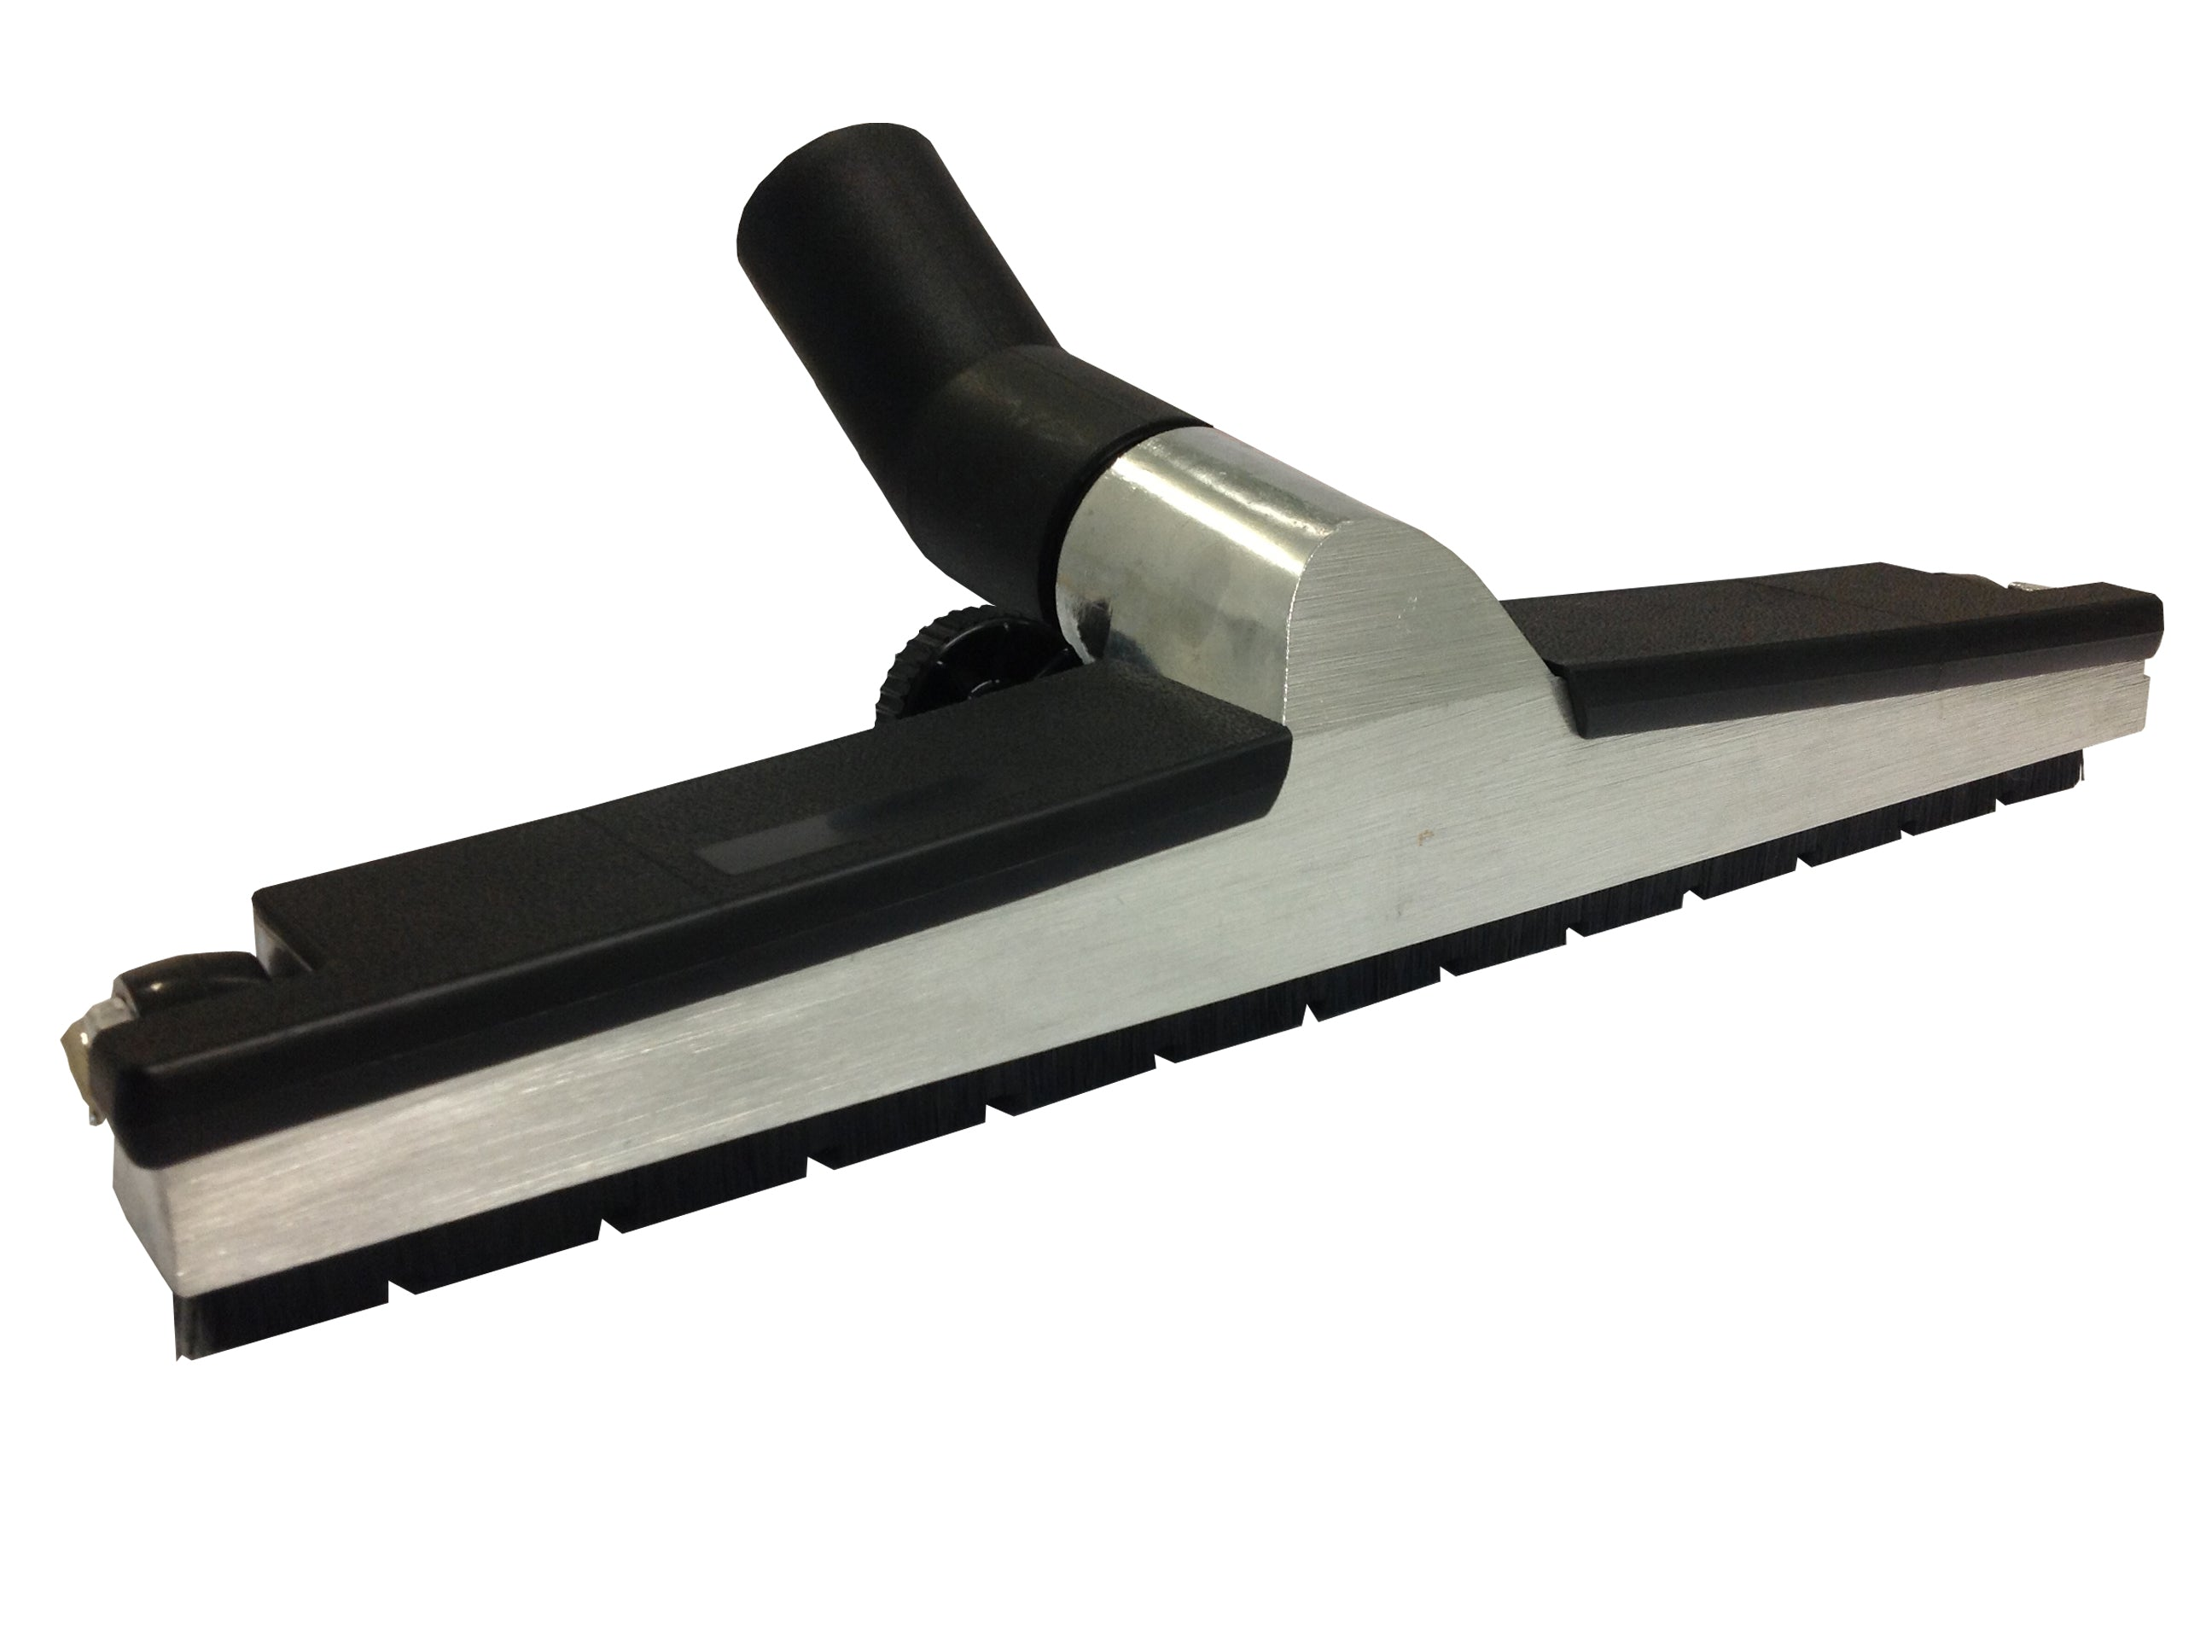 WESSEL WERK GRD370 BRUSH FLOOR TOOL 40MM X 370MM WIDE - ALUMINIUM/BLACK